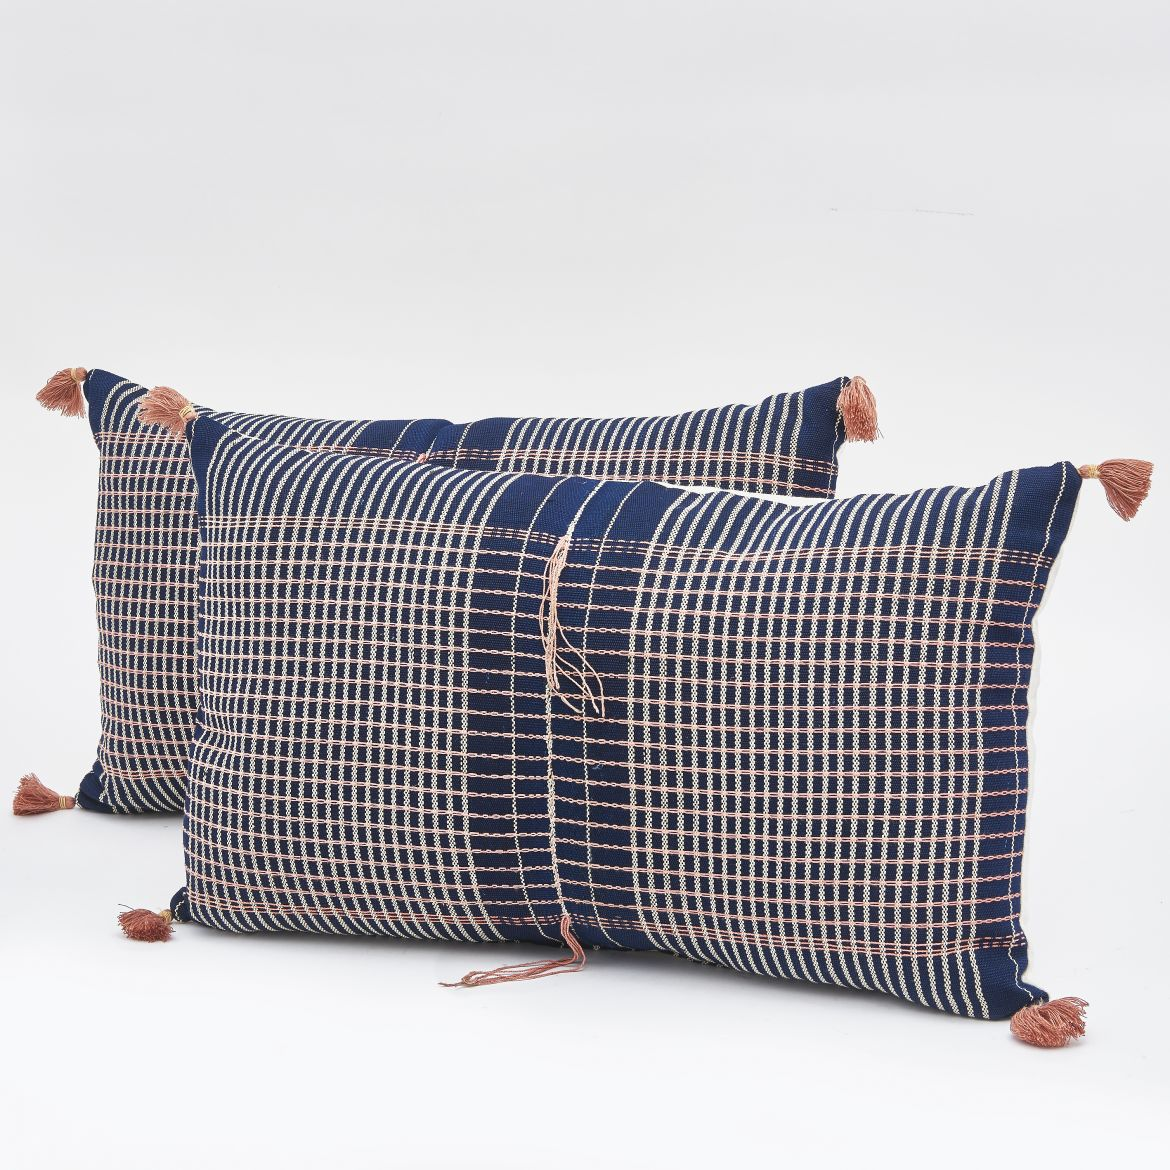 Chinese Fabric Cushions With Tassels